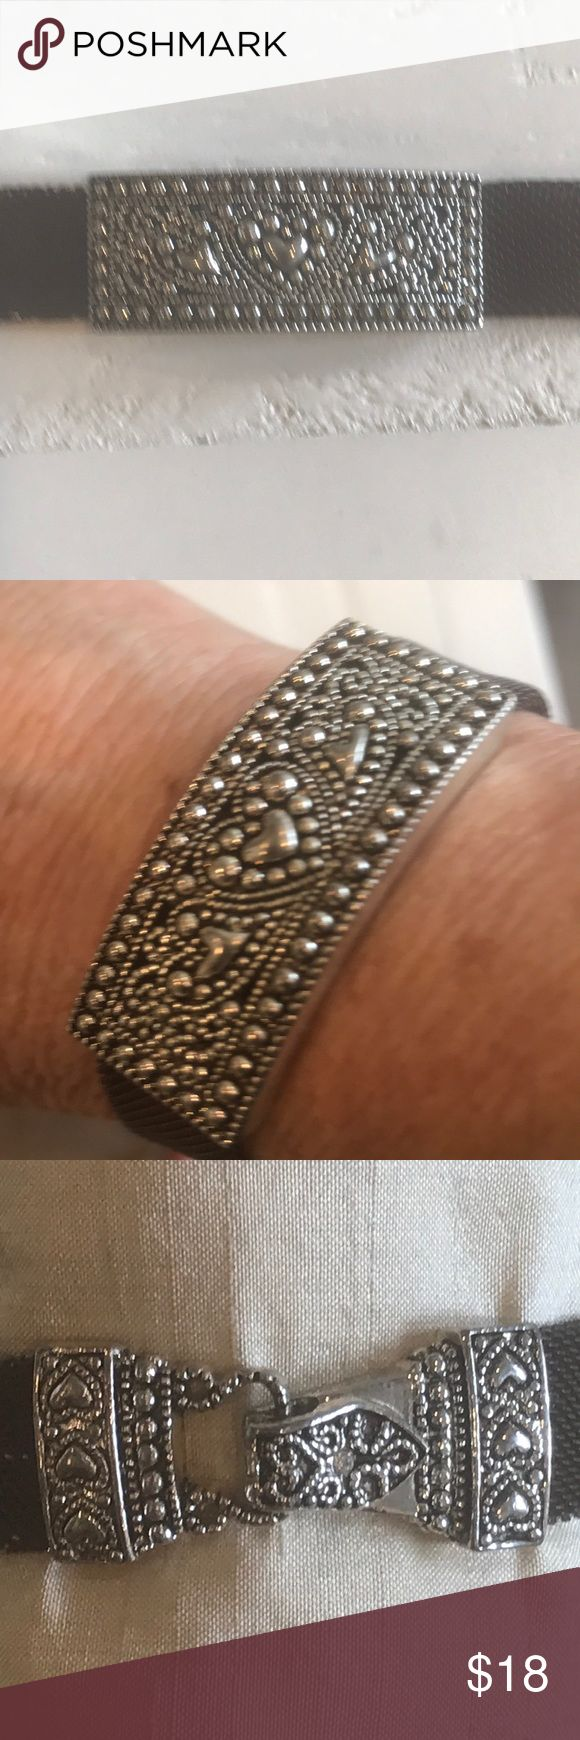 """Three Hearts Silver & Brown Mesh Bracelet Sweet heart bracelet.  The mesh part has some flaws but it is not noticeable when worn!  As shown in Pics!  Barely noticeable!  Self closing clasp!  Very easy to close yourself!  7.25"""" long. Jewelry Bracelets"""